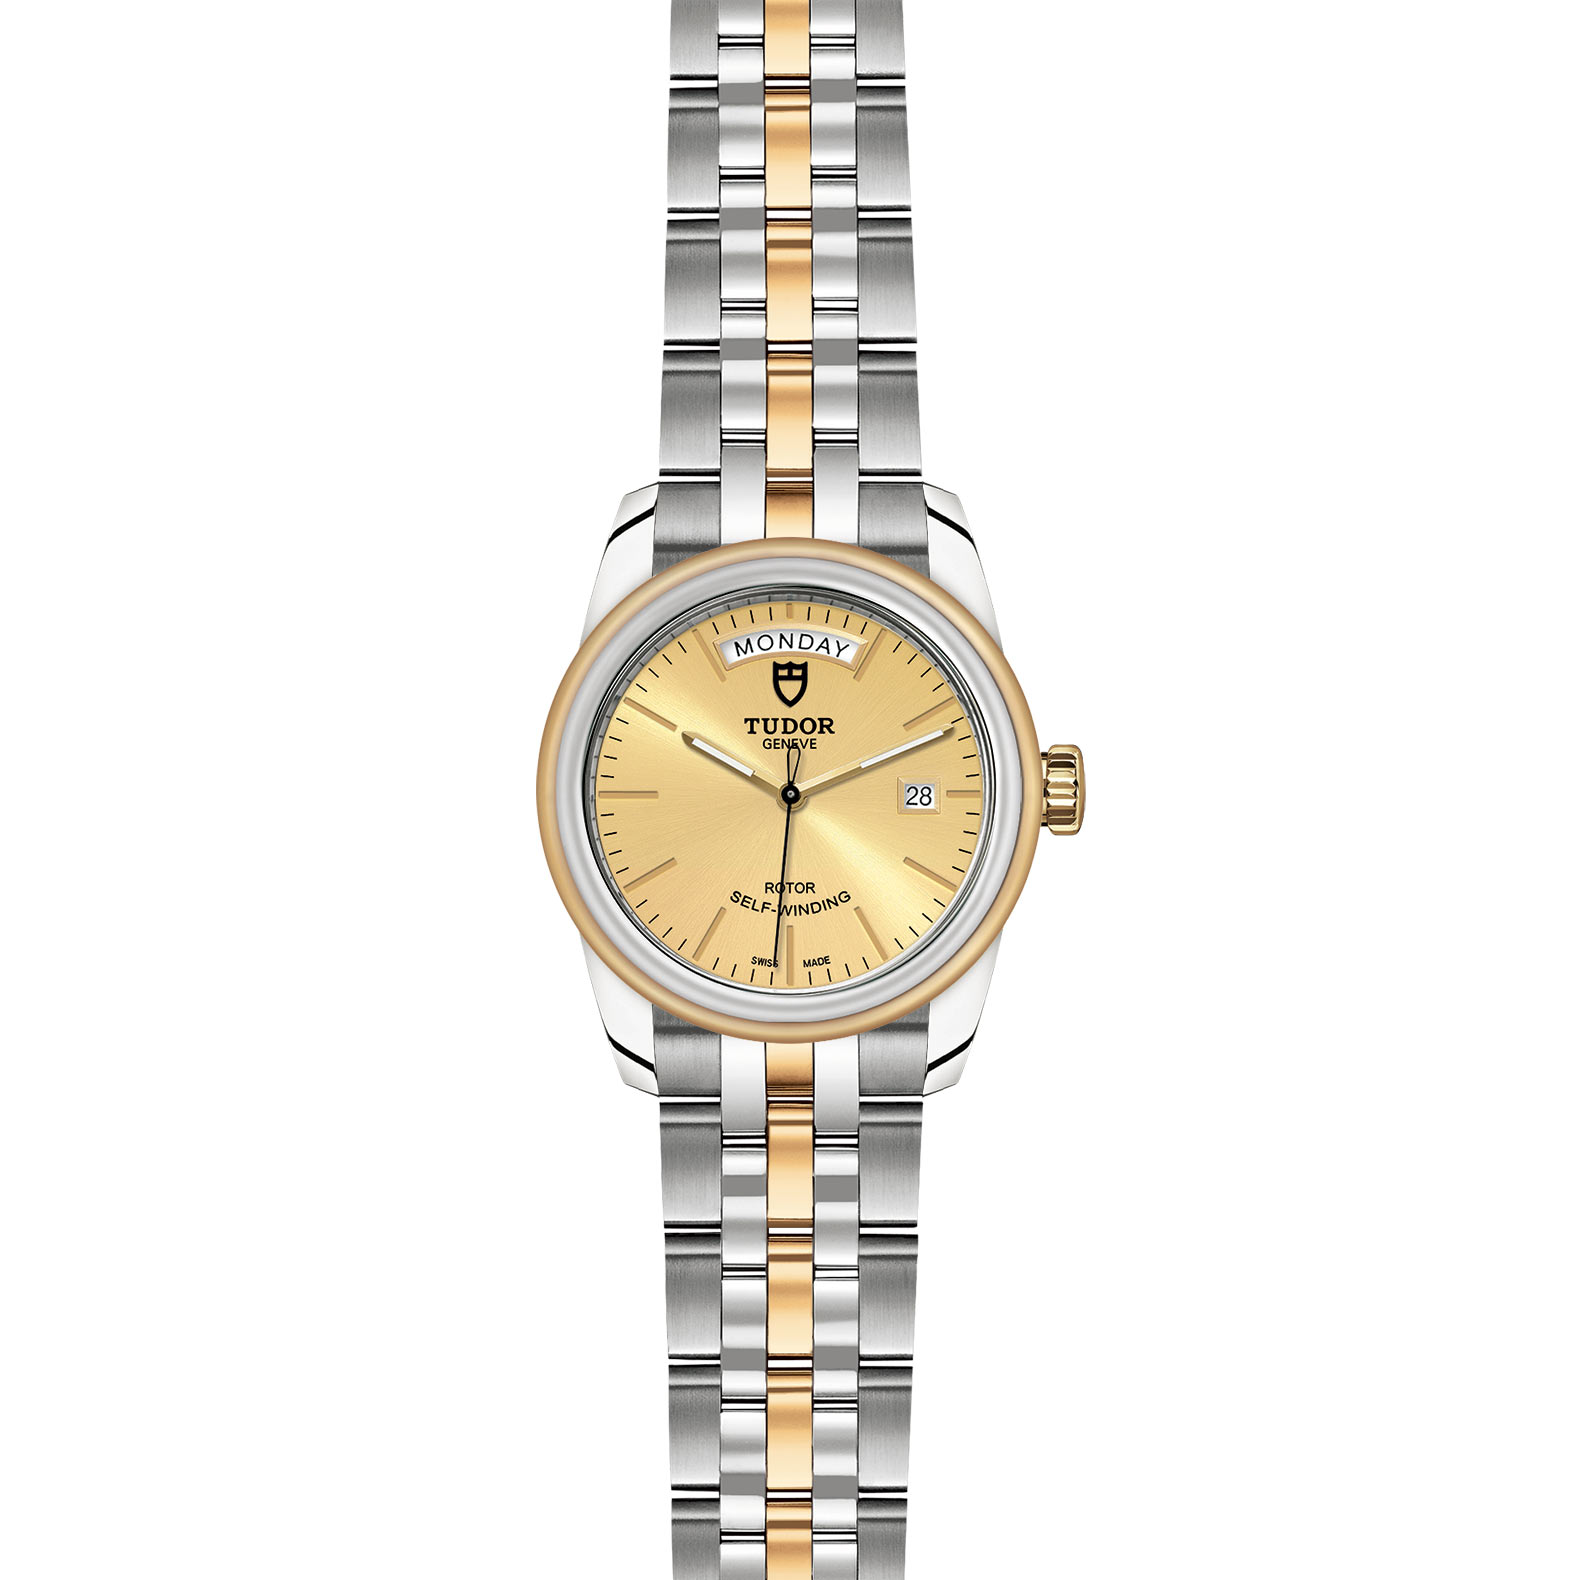 TUDOR Glamour Date Day M56003 0005 Frontfacing